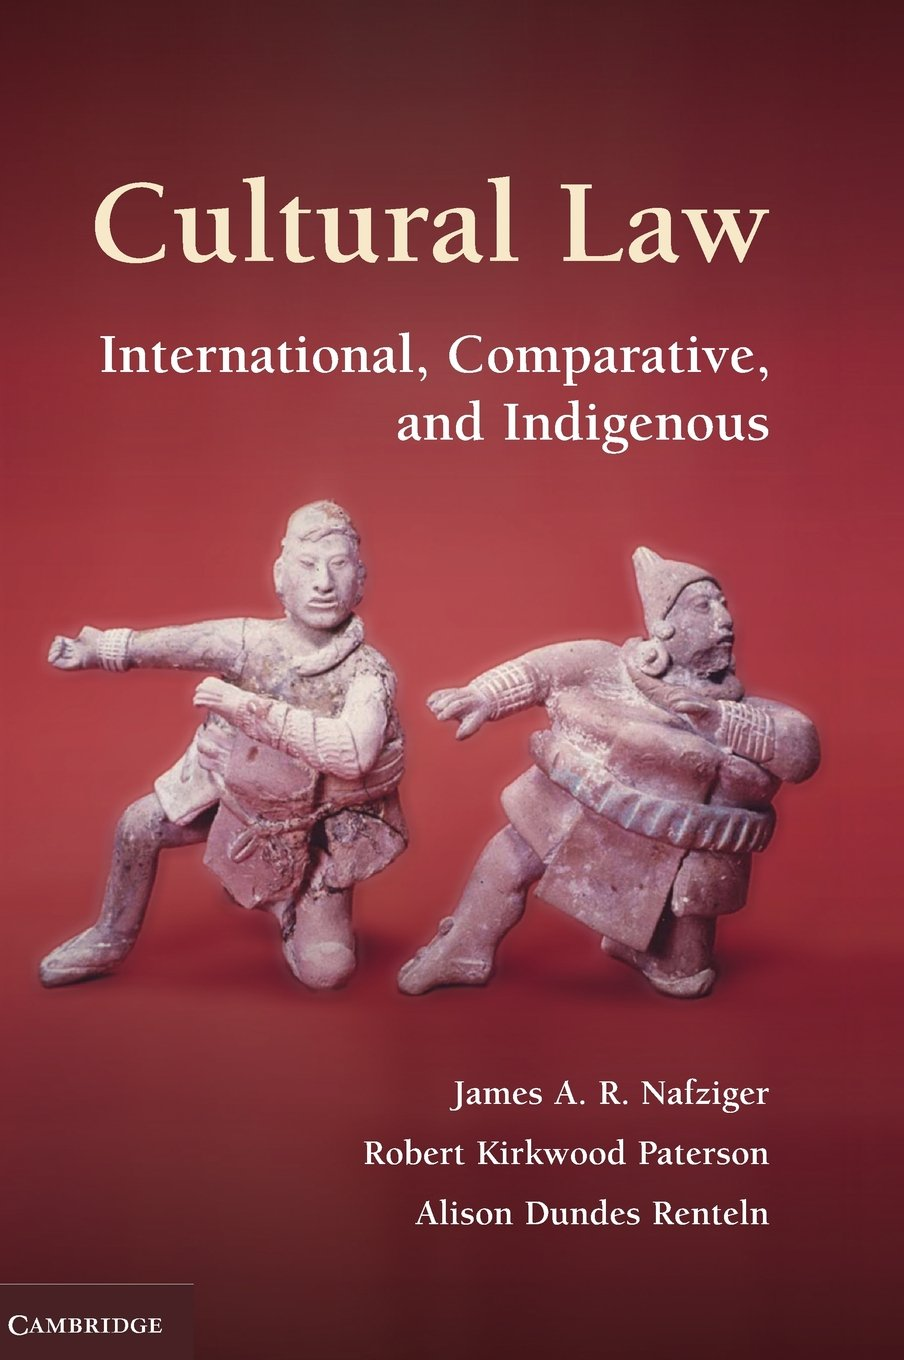 Cultural Law: International, Comparative, and Indigenous free download